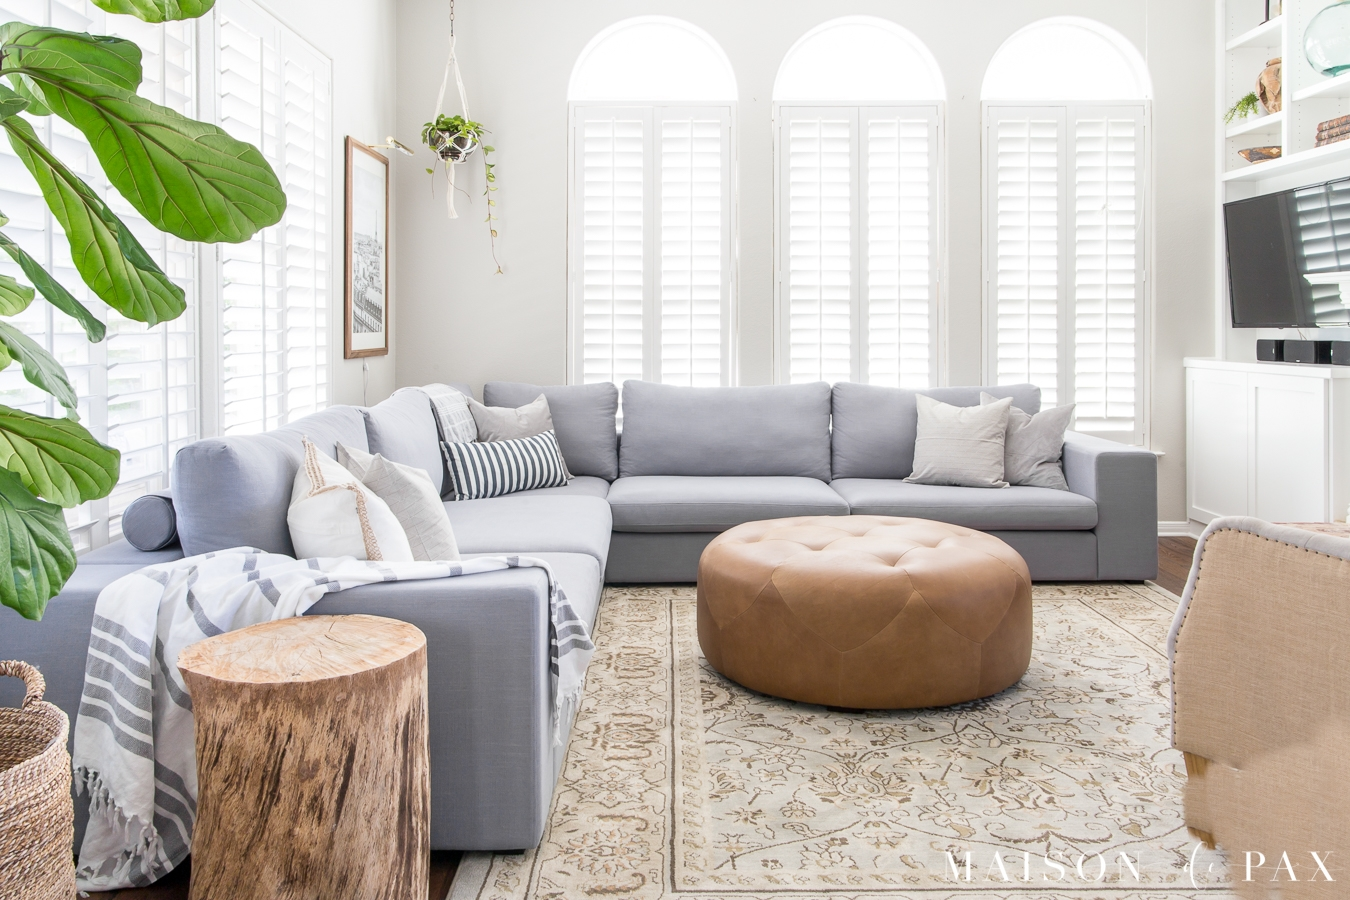 designing a small living room with a large sectional maison de pax